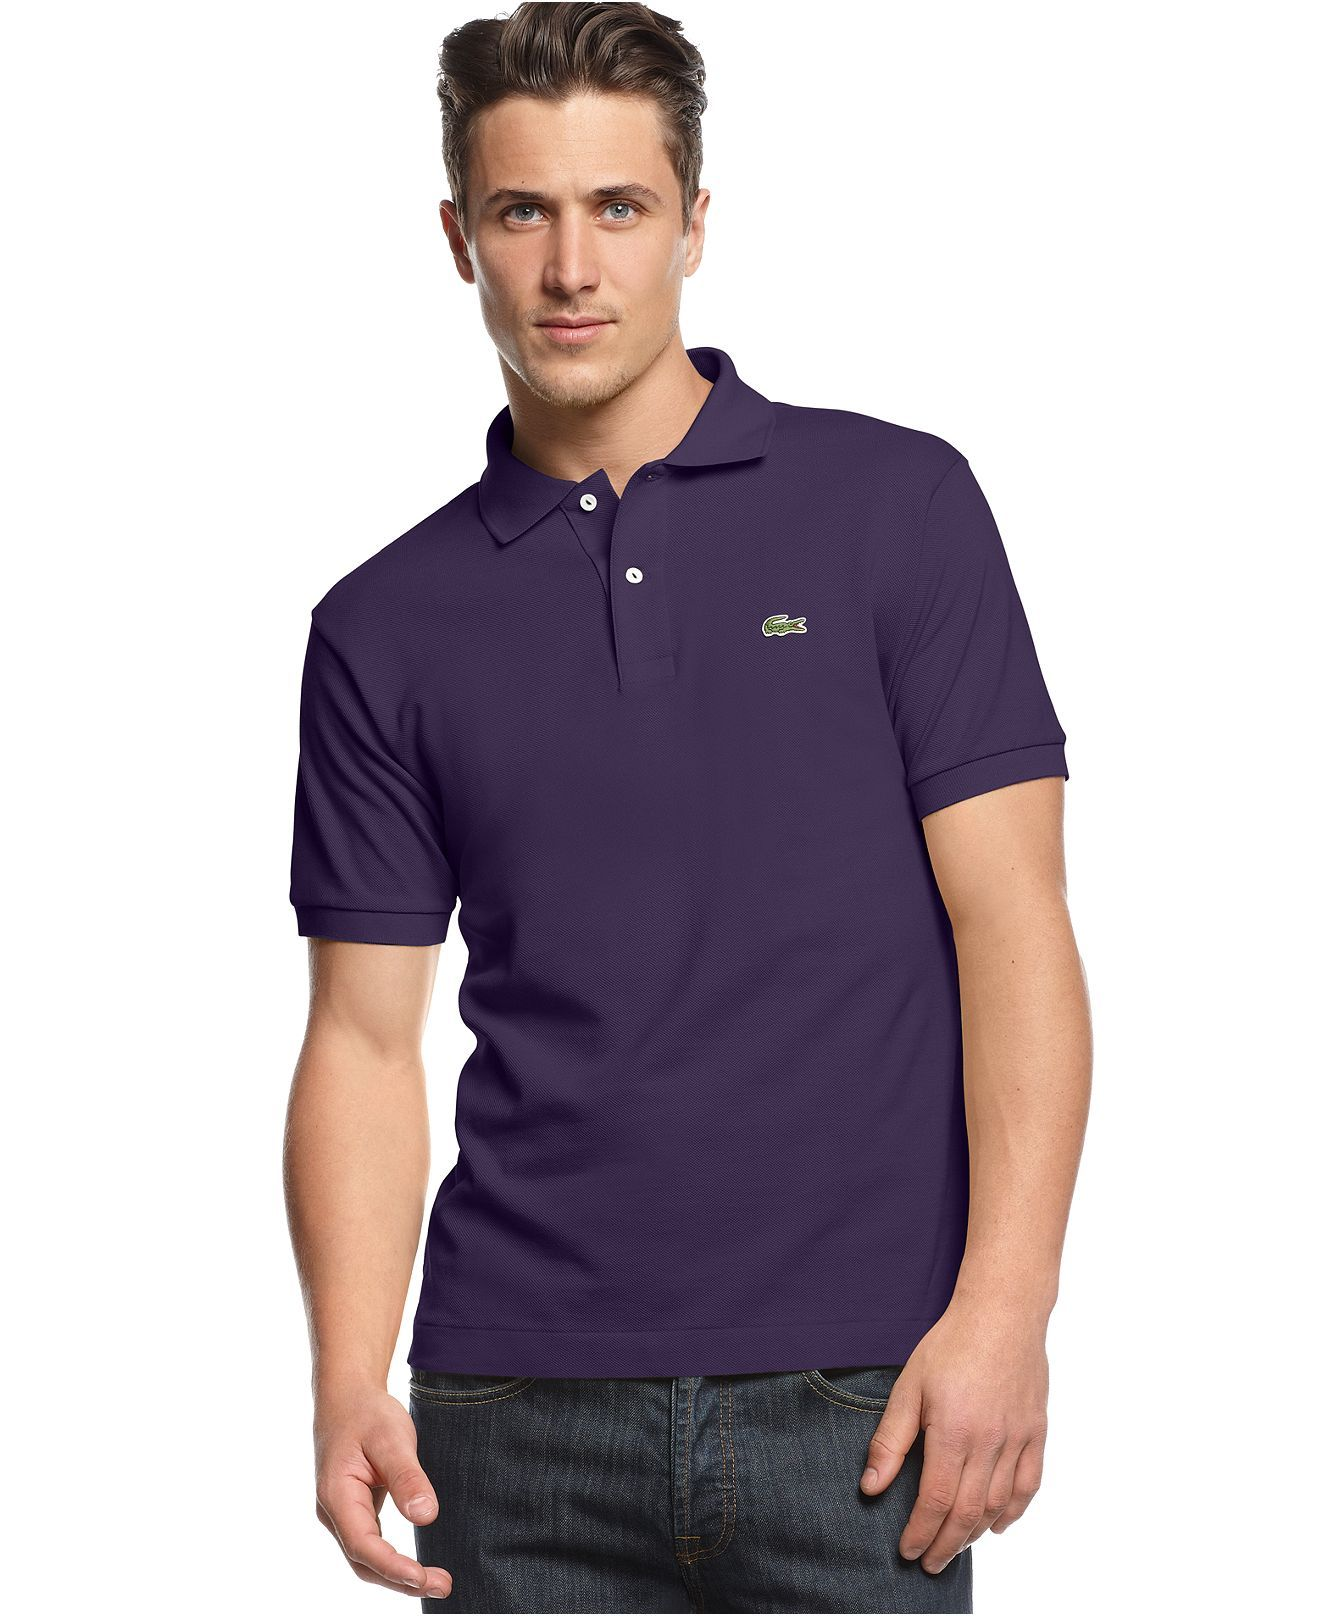 Lacoste shirt classic pique polo shirt mens polos for Lacoste big and tall polo shirts